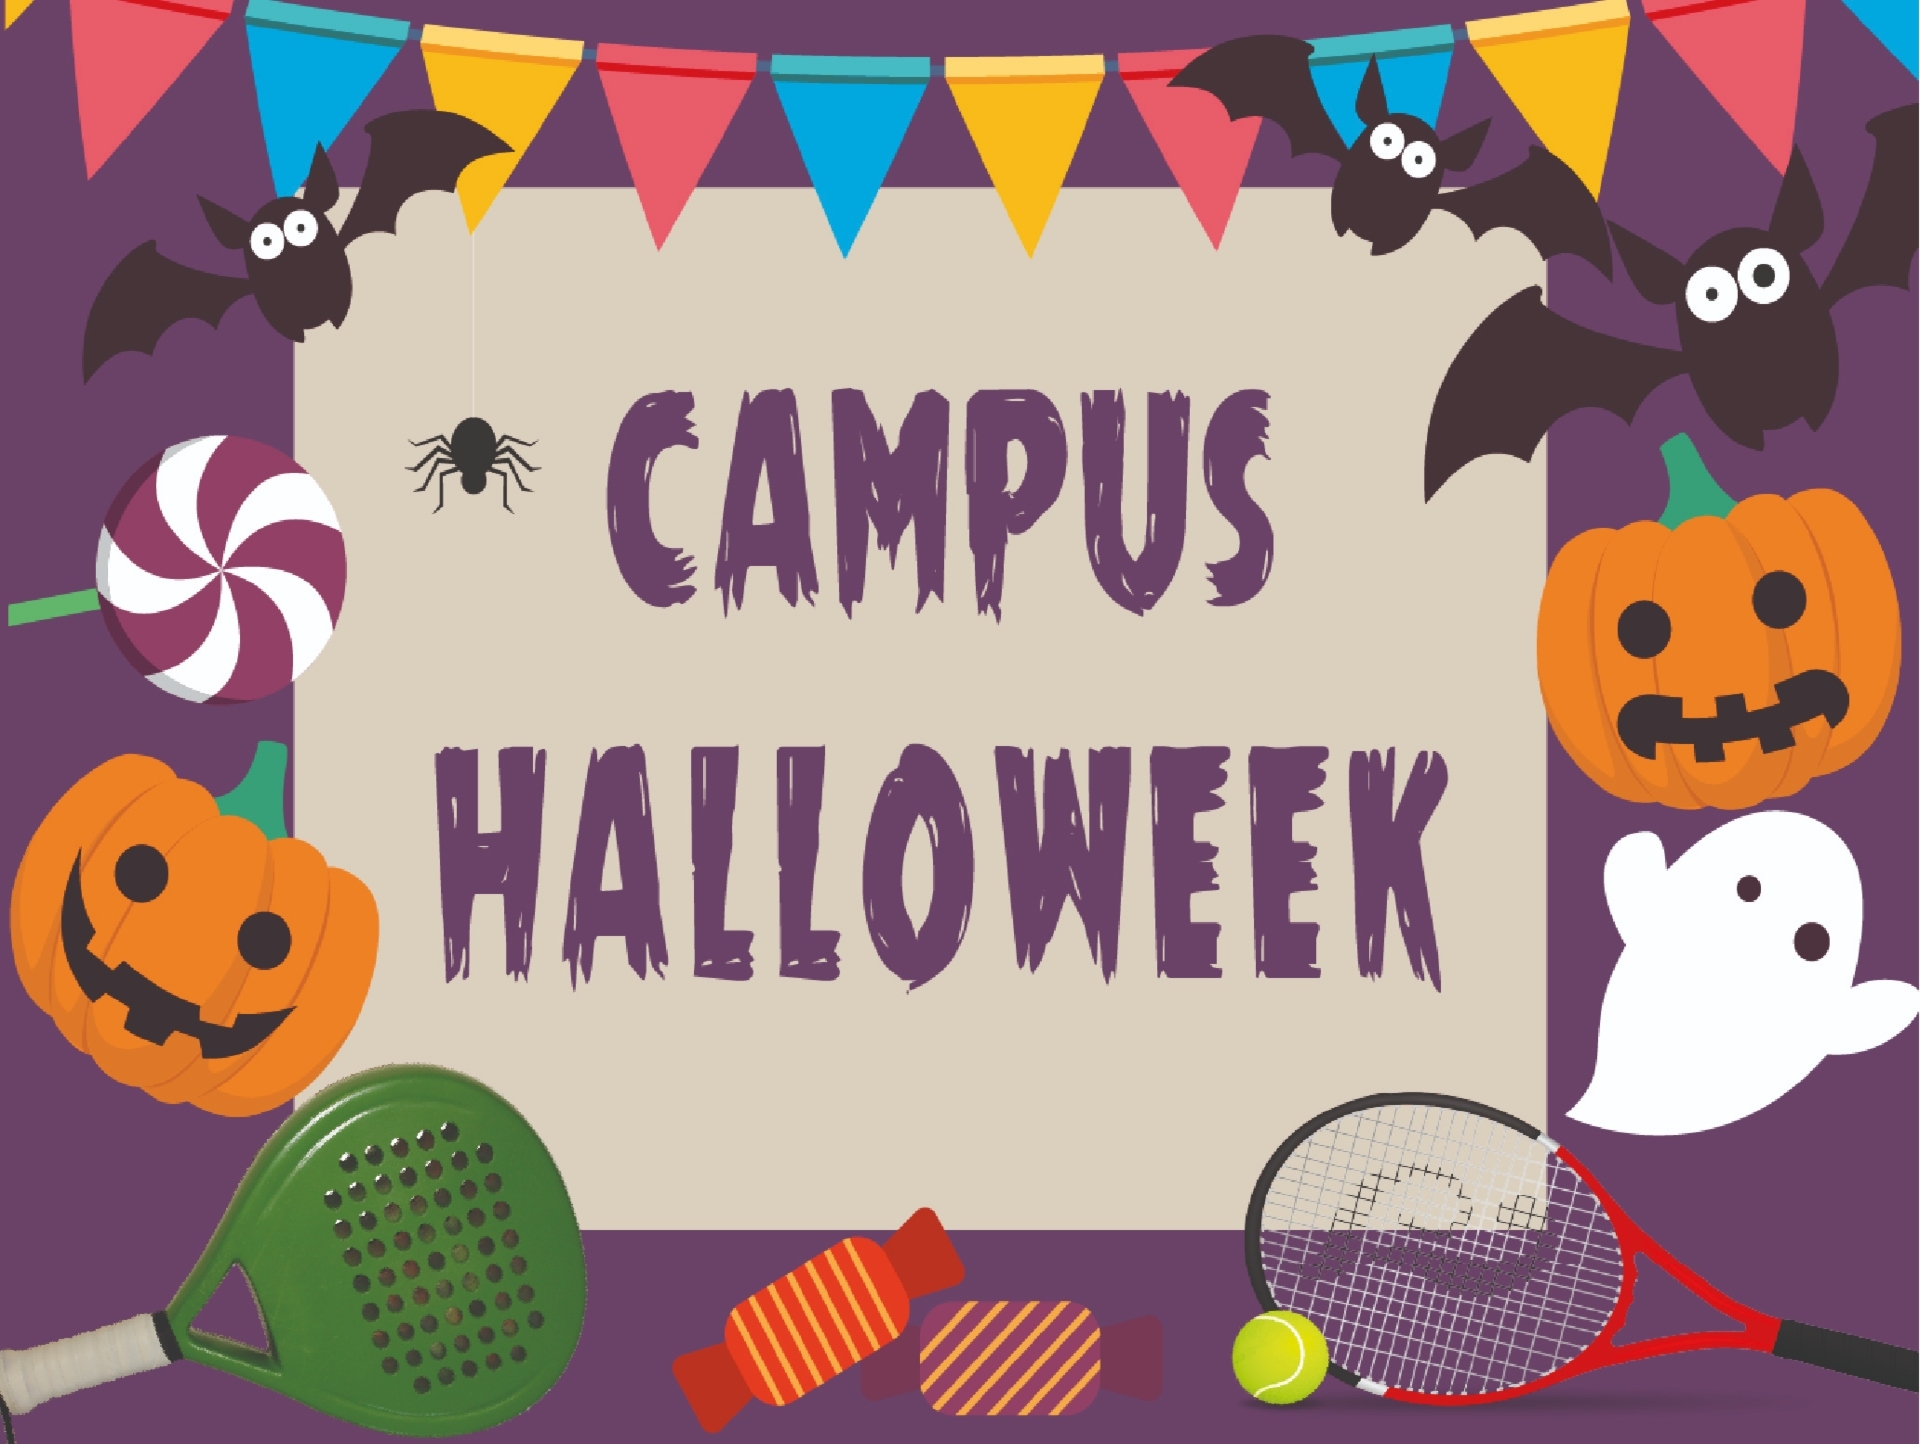 Vine al Campus Halloweek de Princiesport